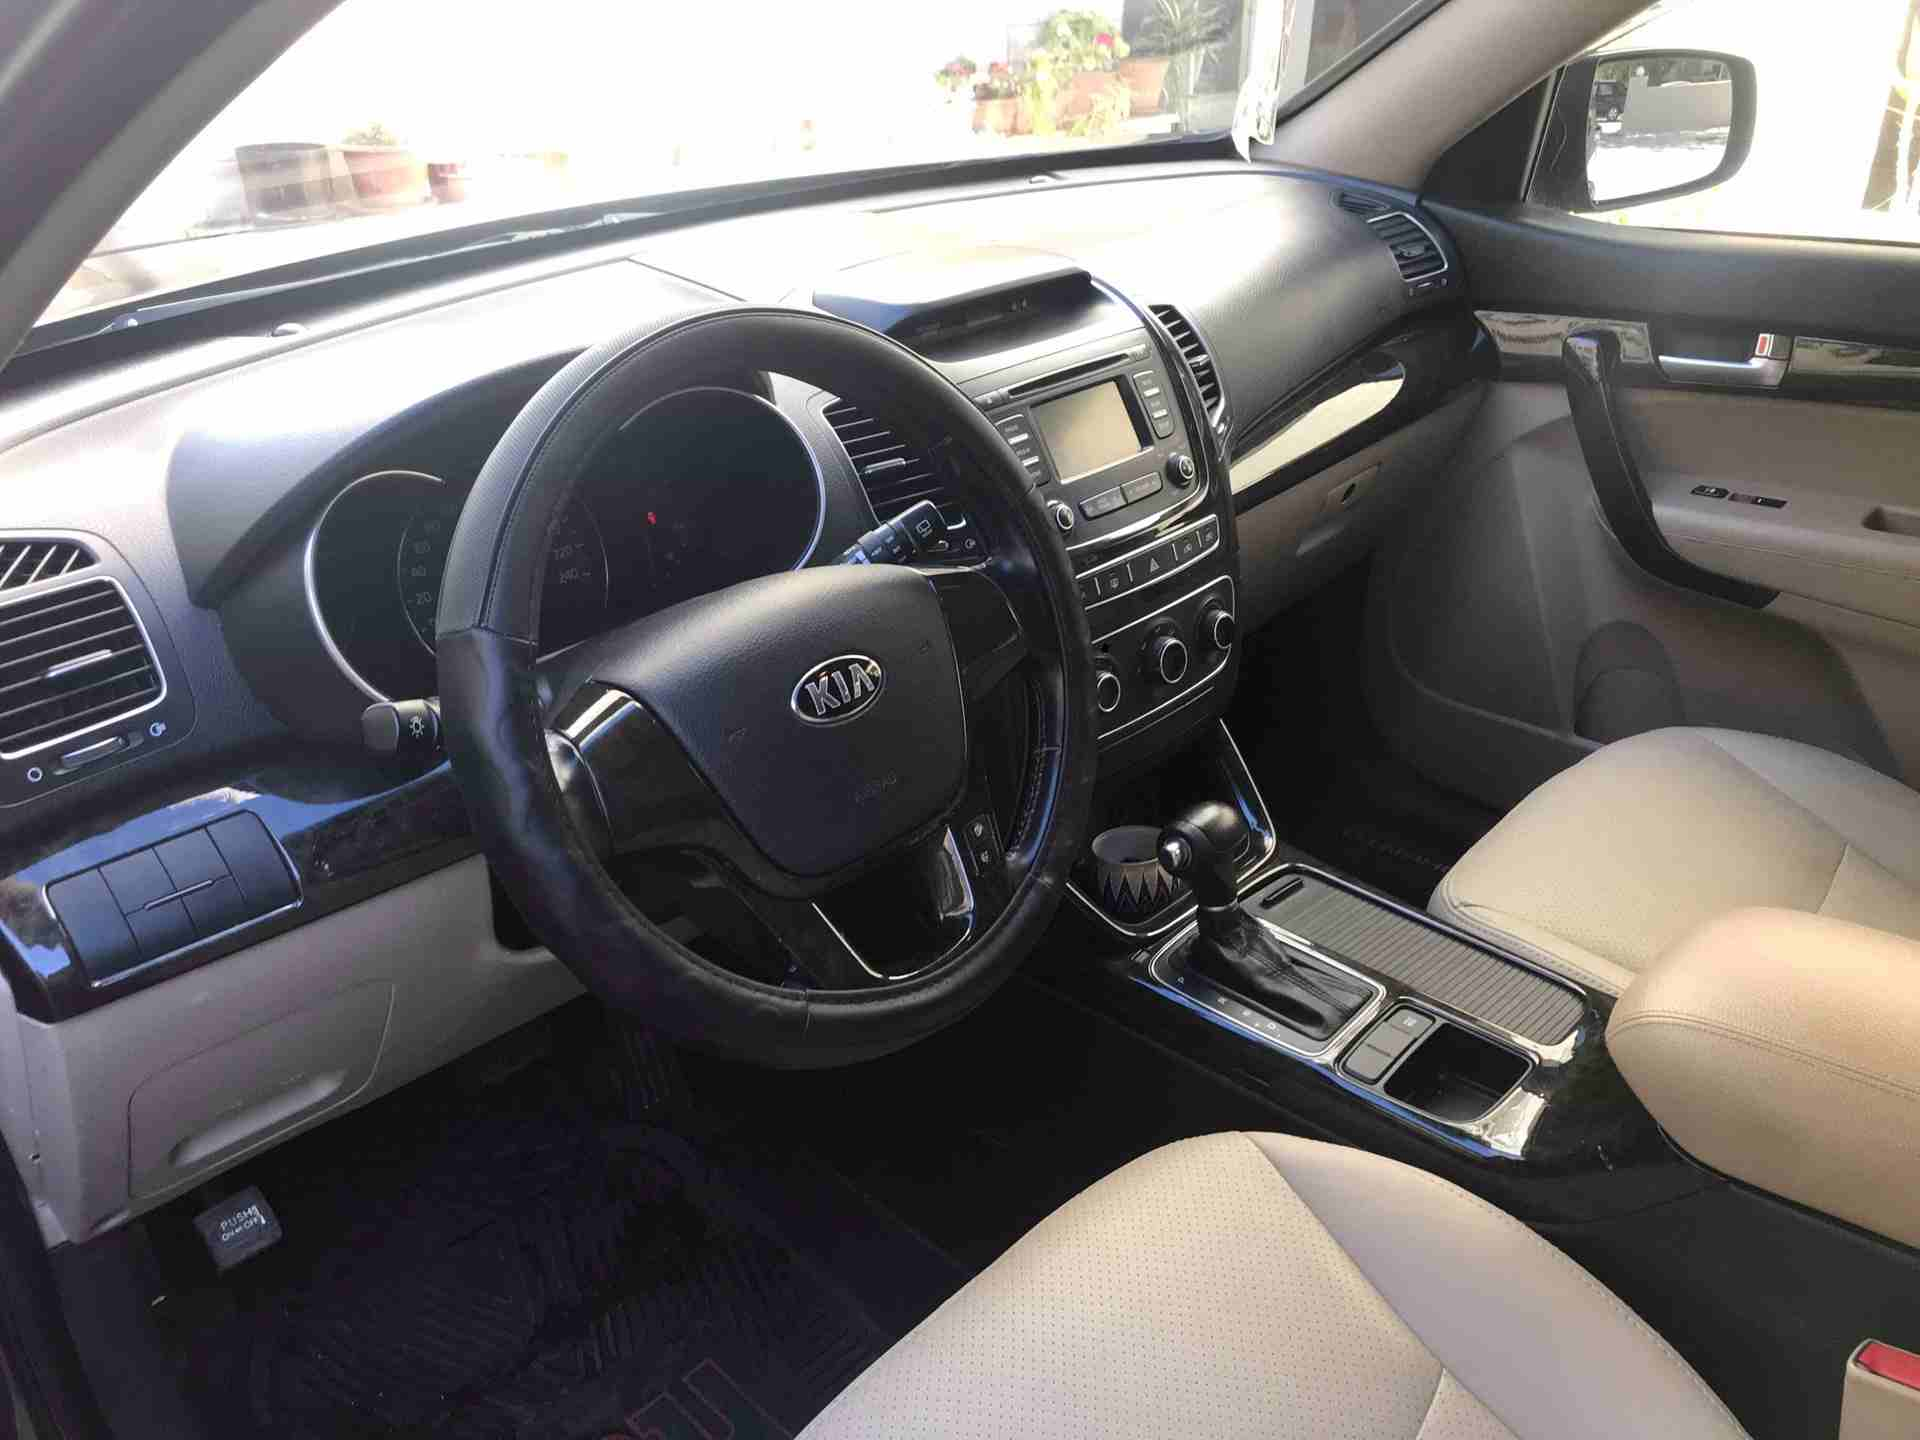 Lexus Rx 350 SUV 2018 GCC is very clean like brand new with warranty,Red 2018 model, This car has automatic transmission.GCC specs.CONTACT EMAIL: Mrharry1931@gm-  كيا سورنتو 2014 لا تنسَ...